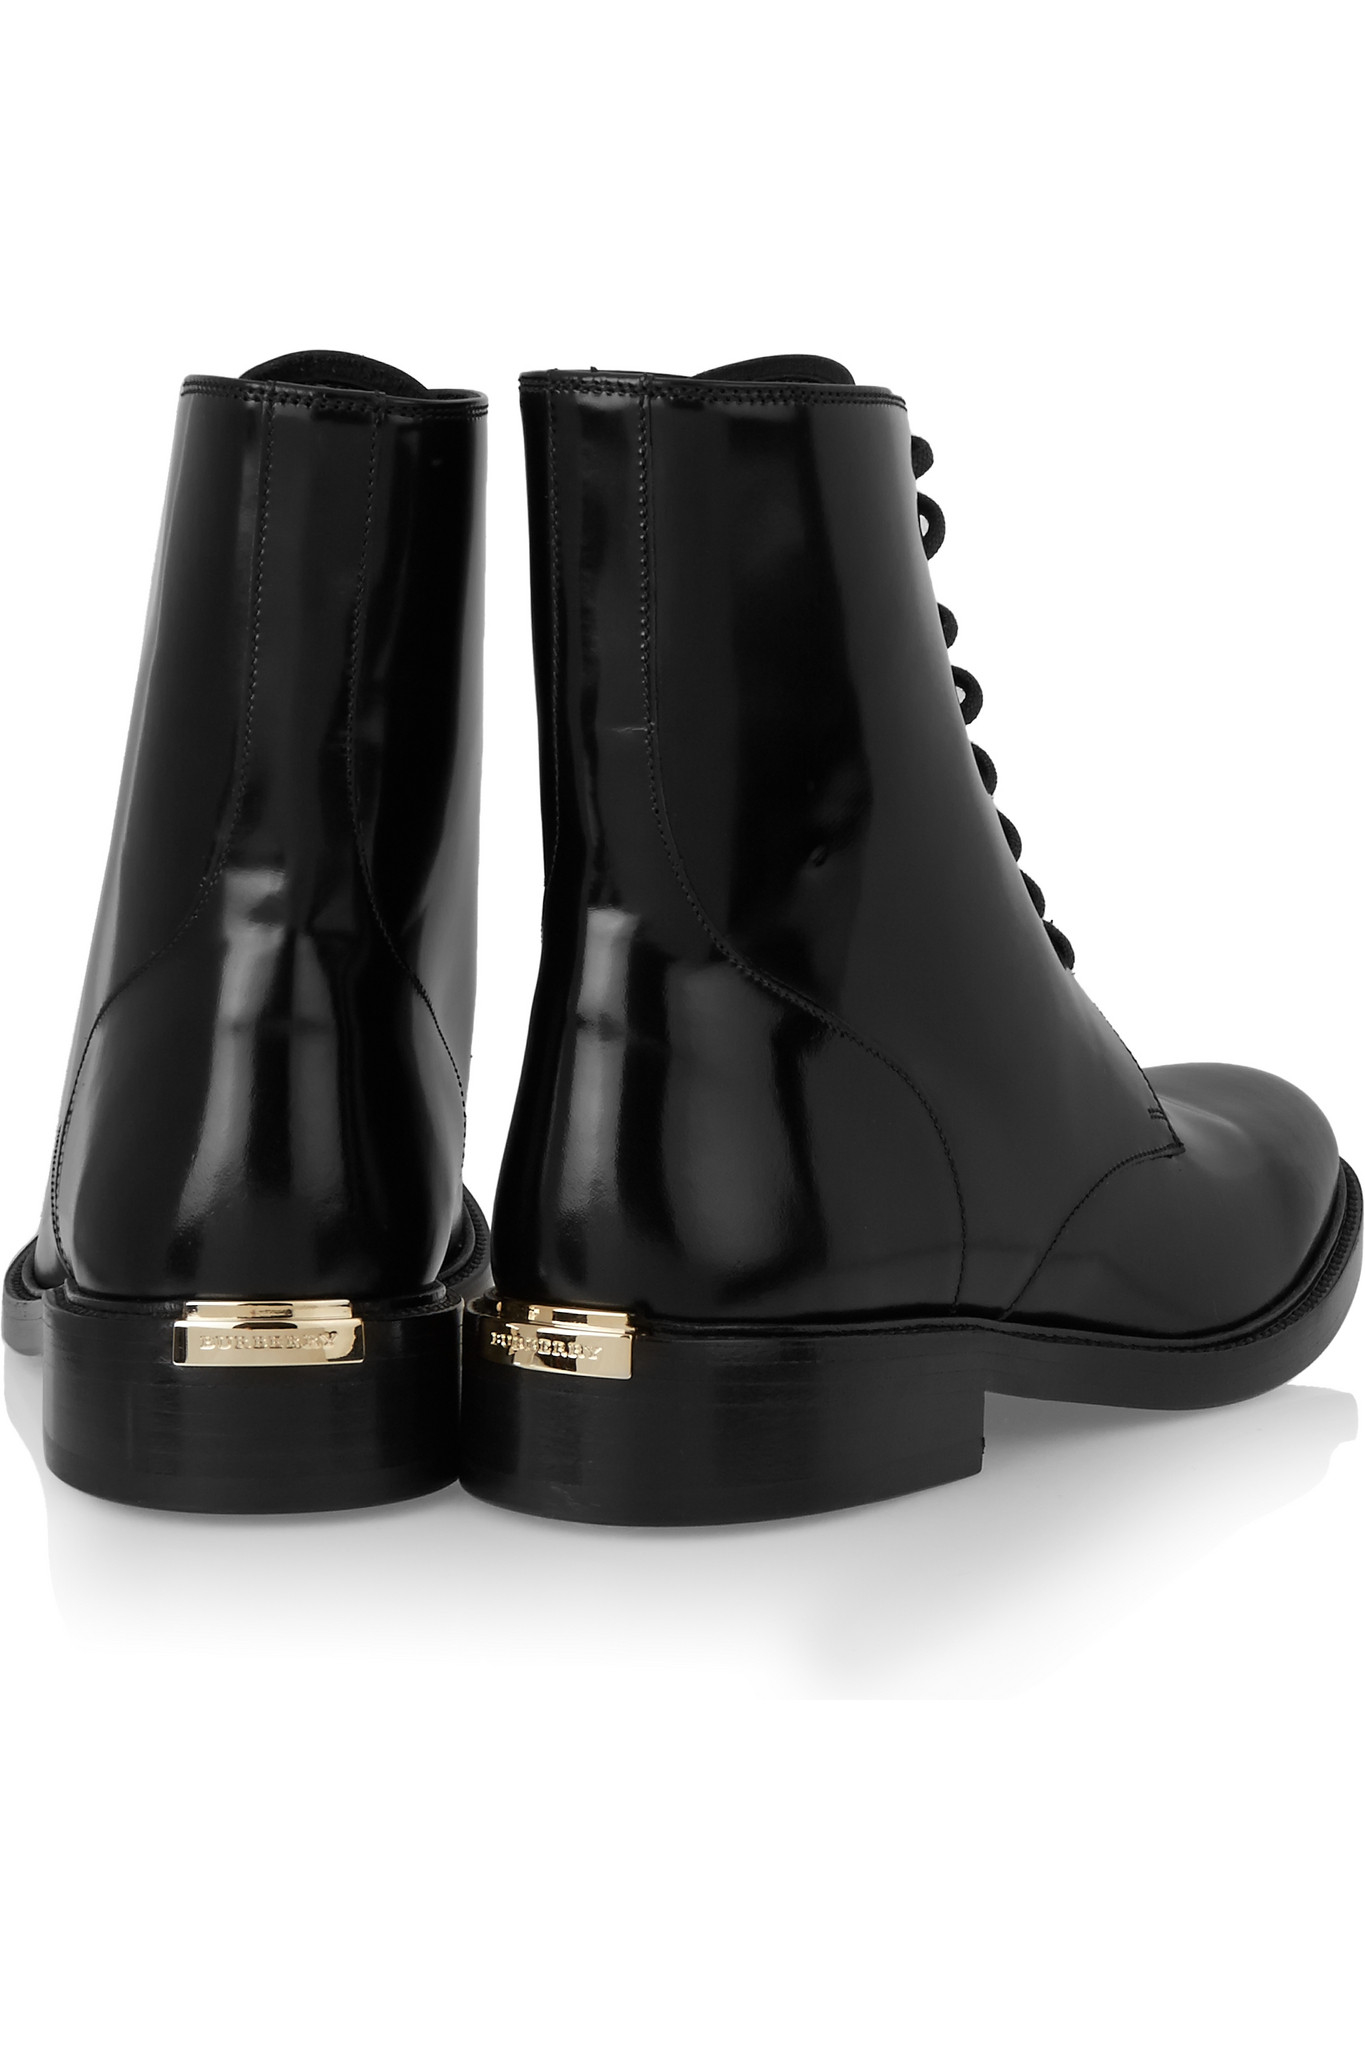 Burberry Black Leather Ankle Boots Gv3hwbB4I